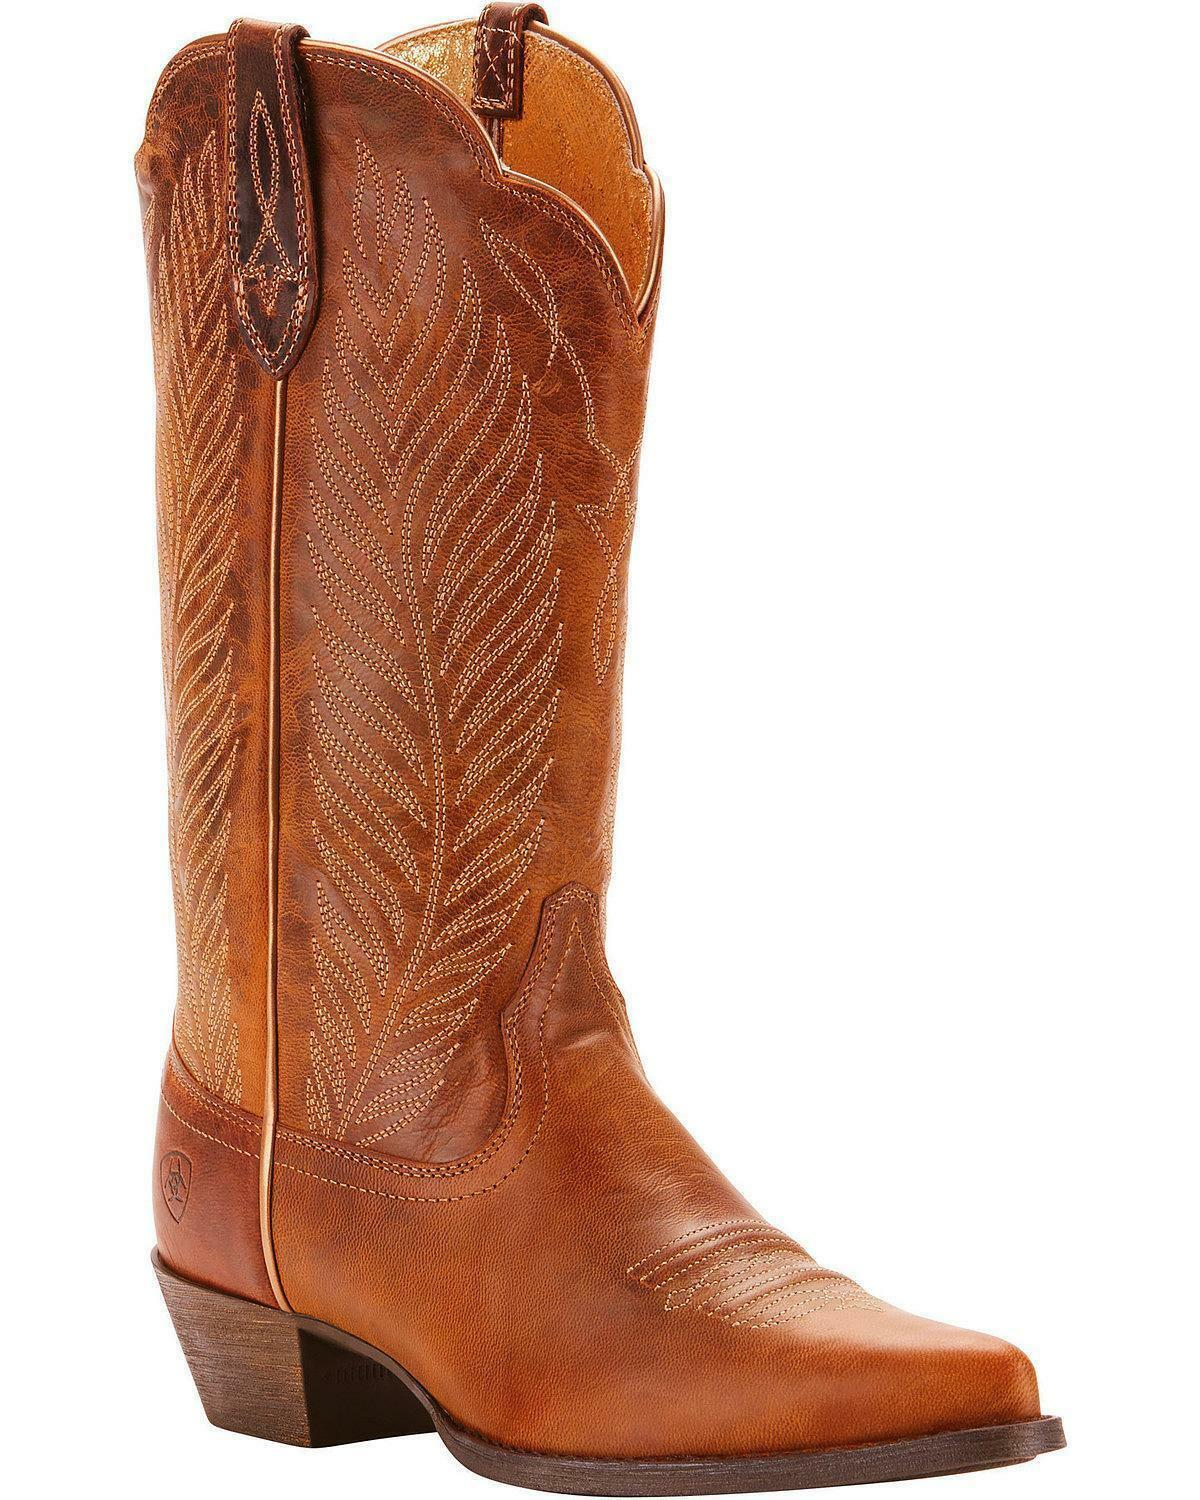 Ariat Women's Round Up Johanna Pearl Cowgirl Boot - Pointed Toe - 10025152